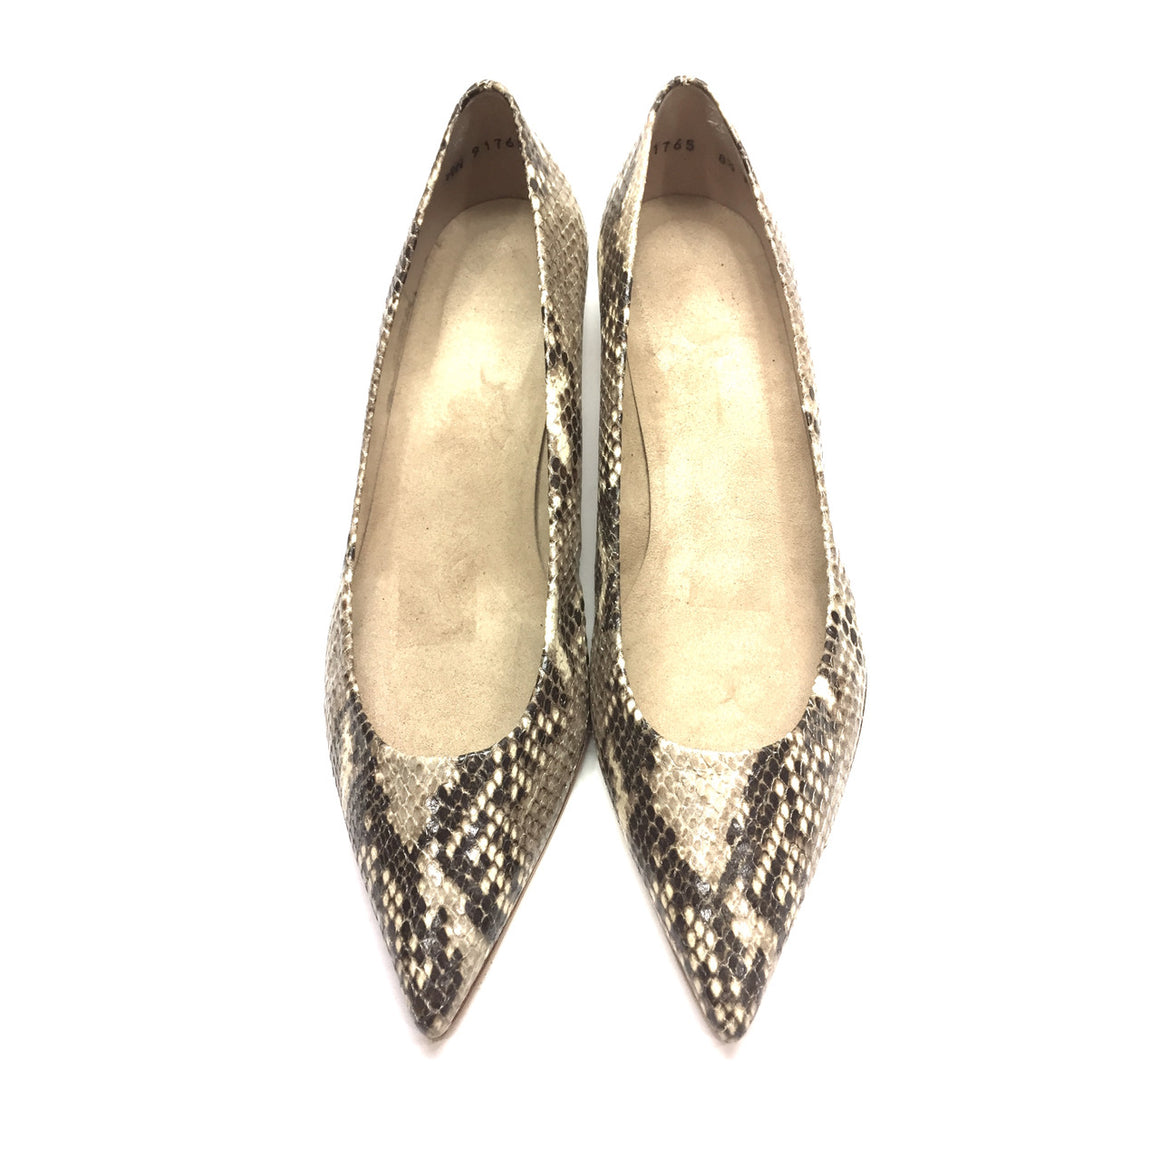 STUART WEITZMAN Brown/Beige Python Pointed-Toes Kitten Heels Pumps Shoes Sz8.5M